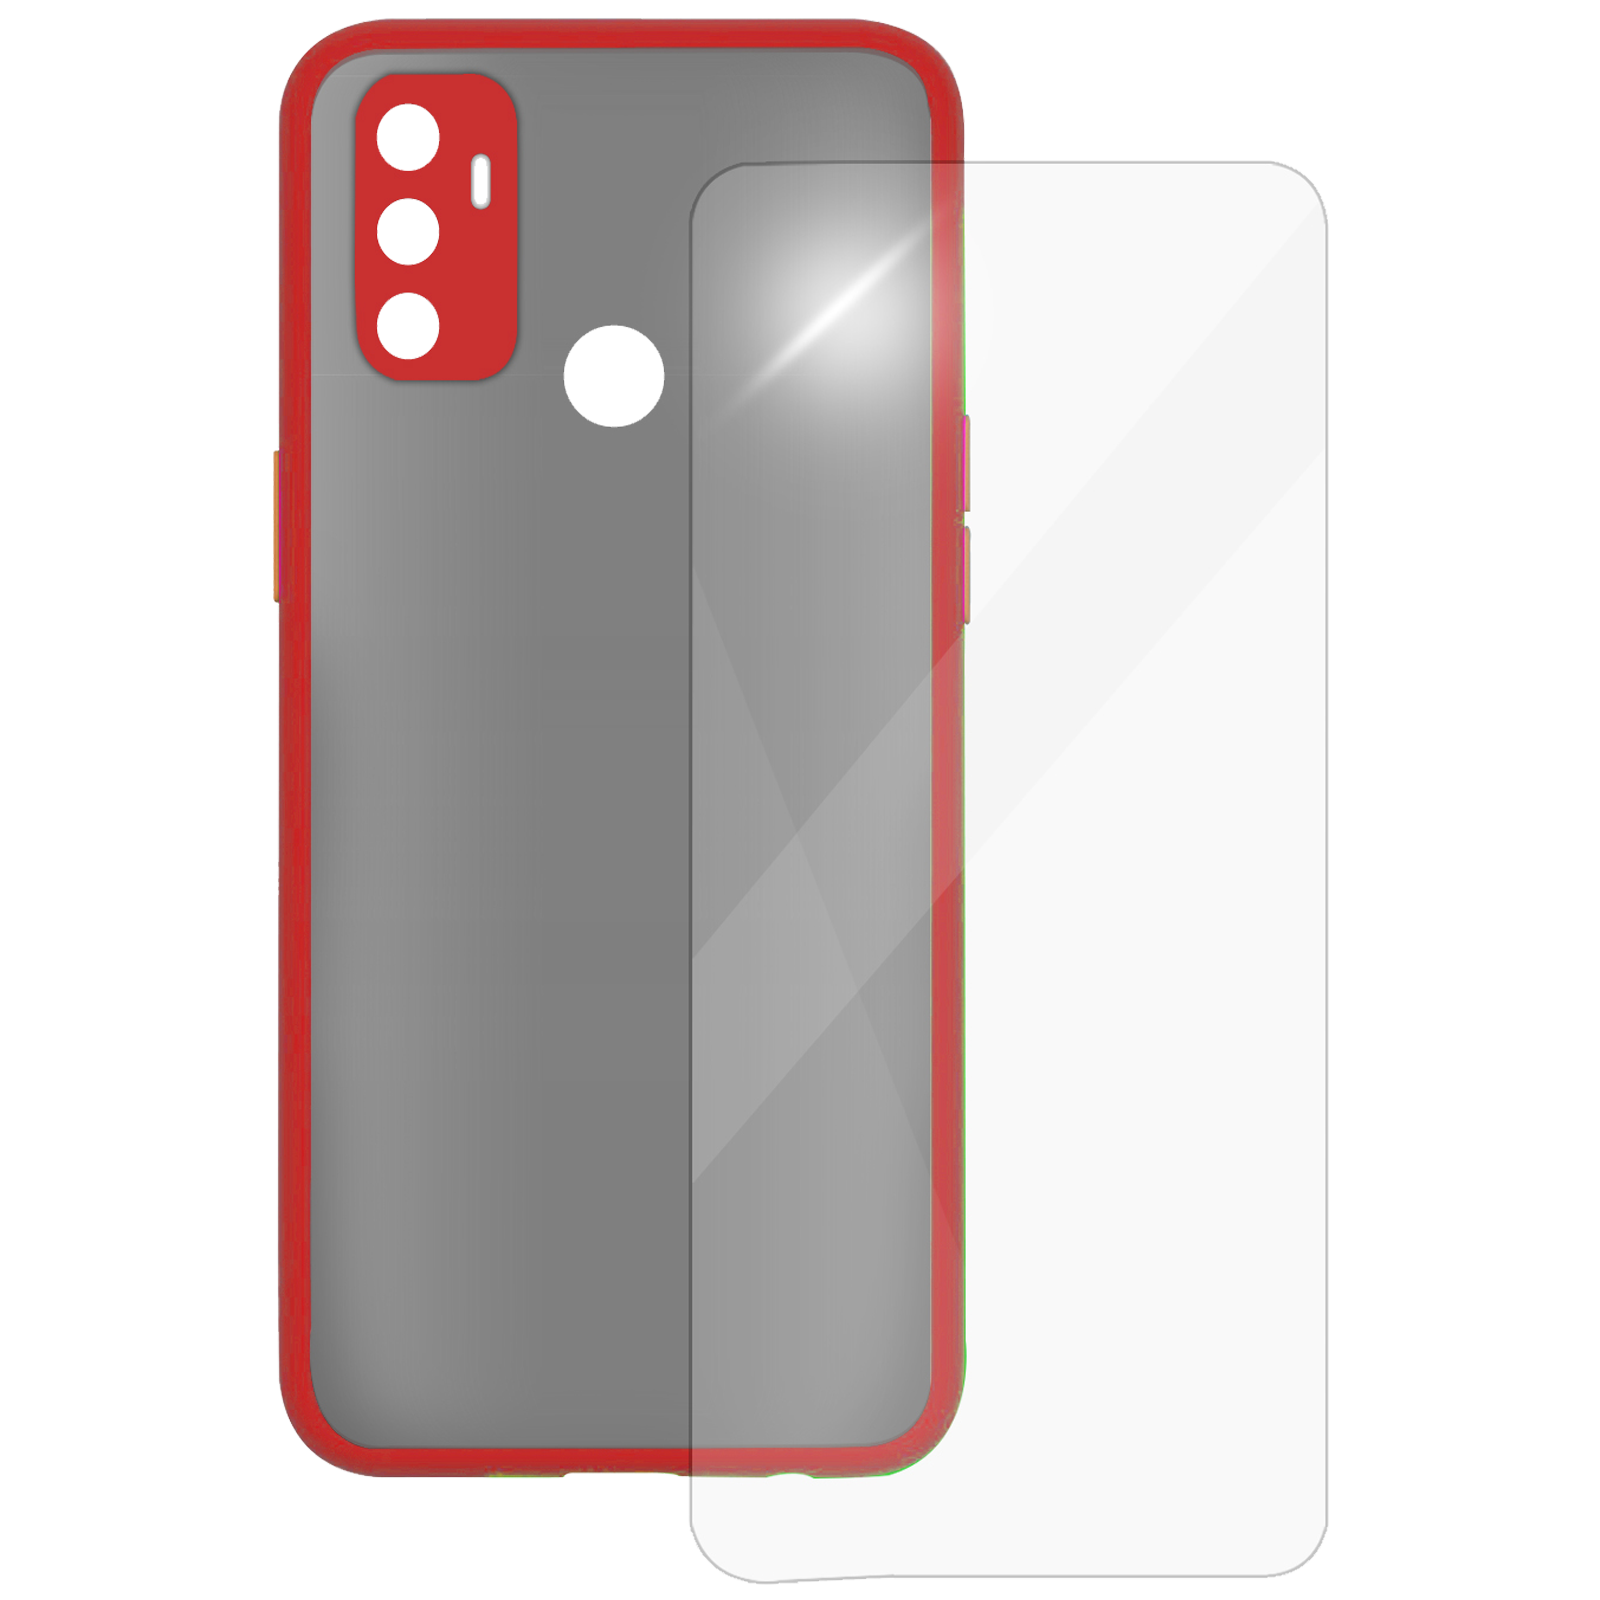 Arrow Camera Duplex Back Case and Screen Protector Bundle For Oppo A53 (Ultra Transparent Visibility, AR-960, Red)_1